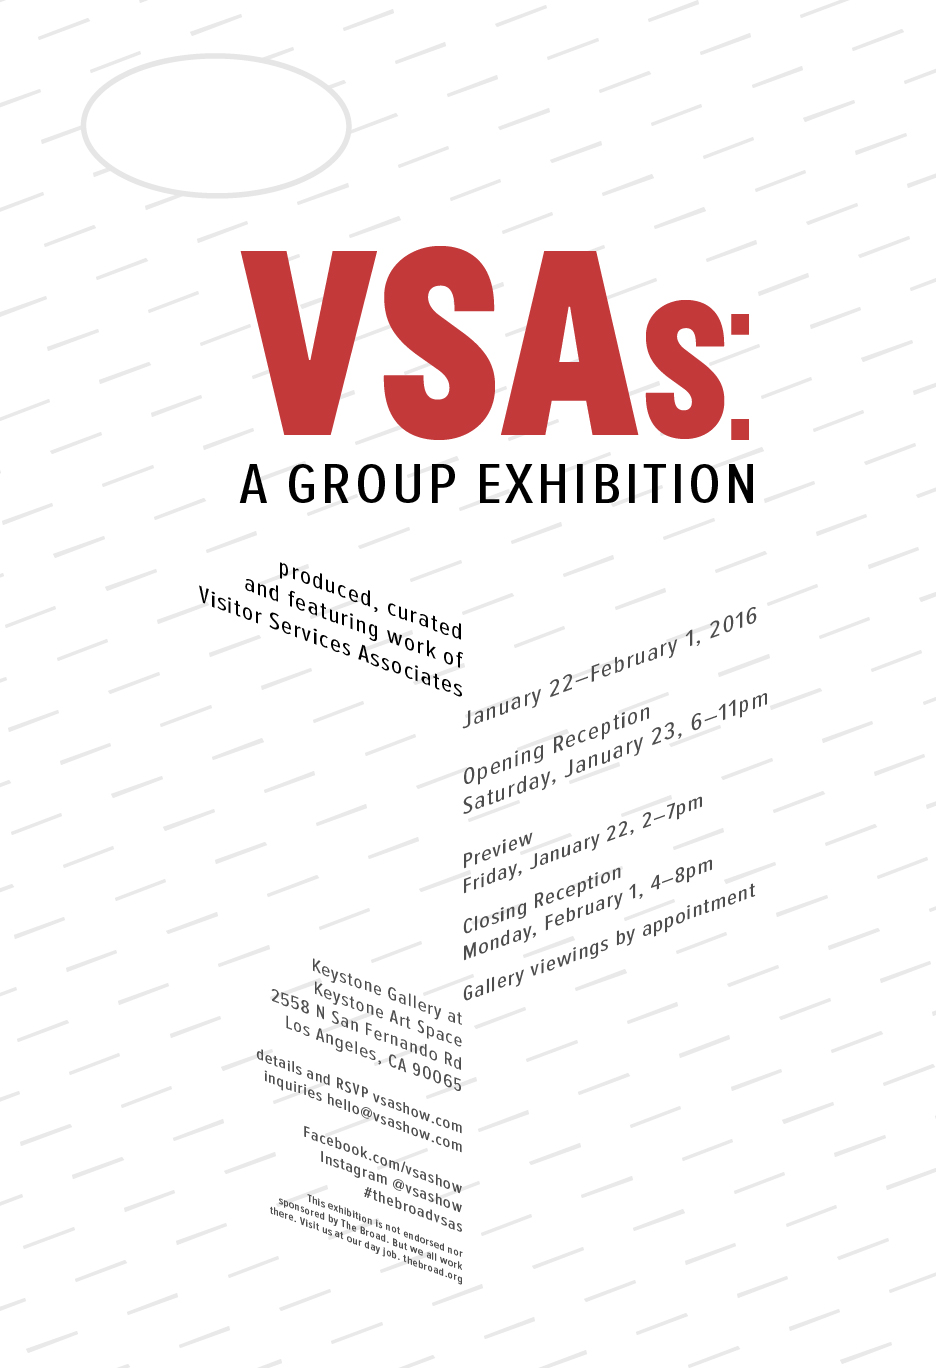 VSAs: A Group Exhibition featuring Visitor Services Associates from The Broad opens Saturday, January 23, 2016.